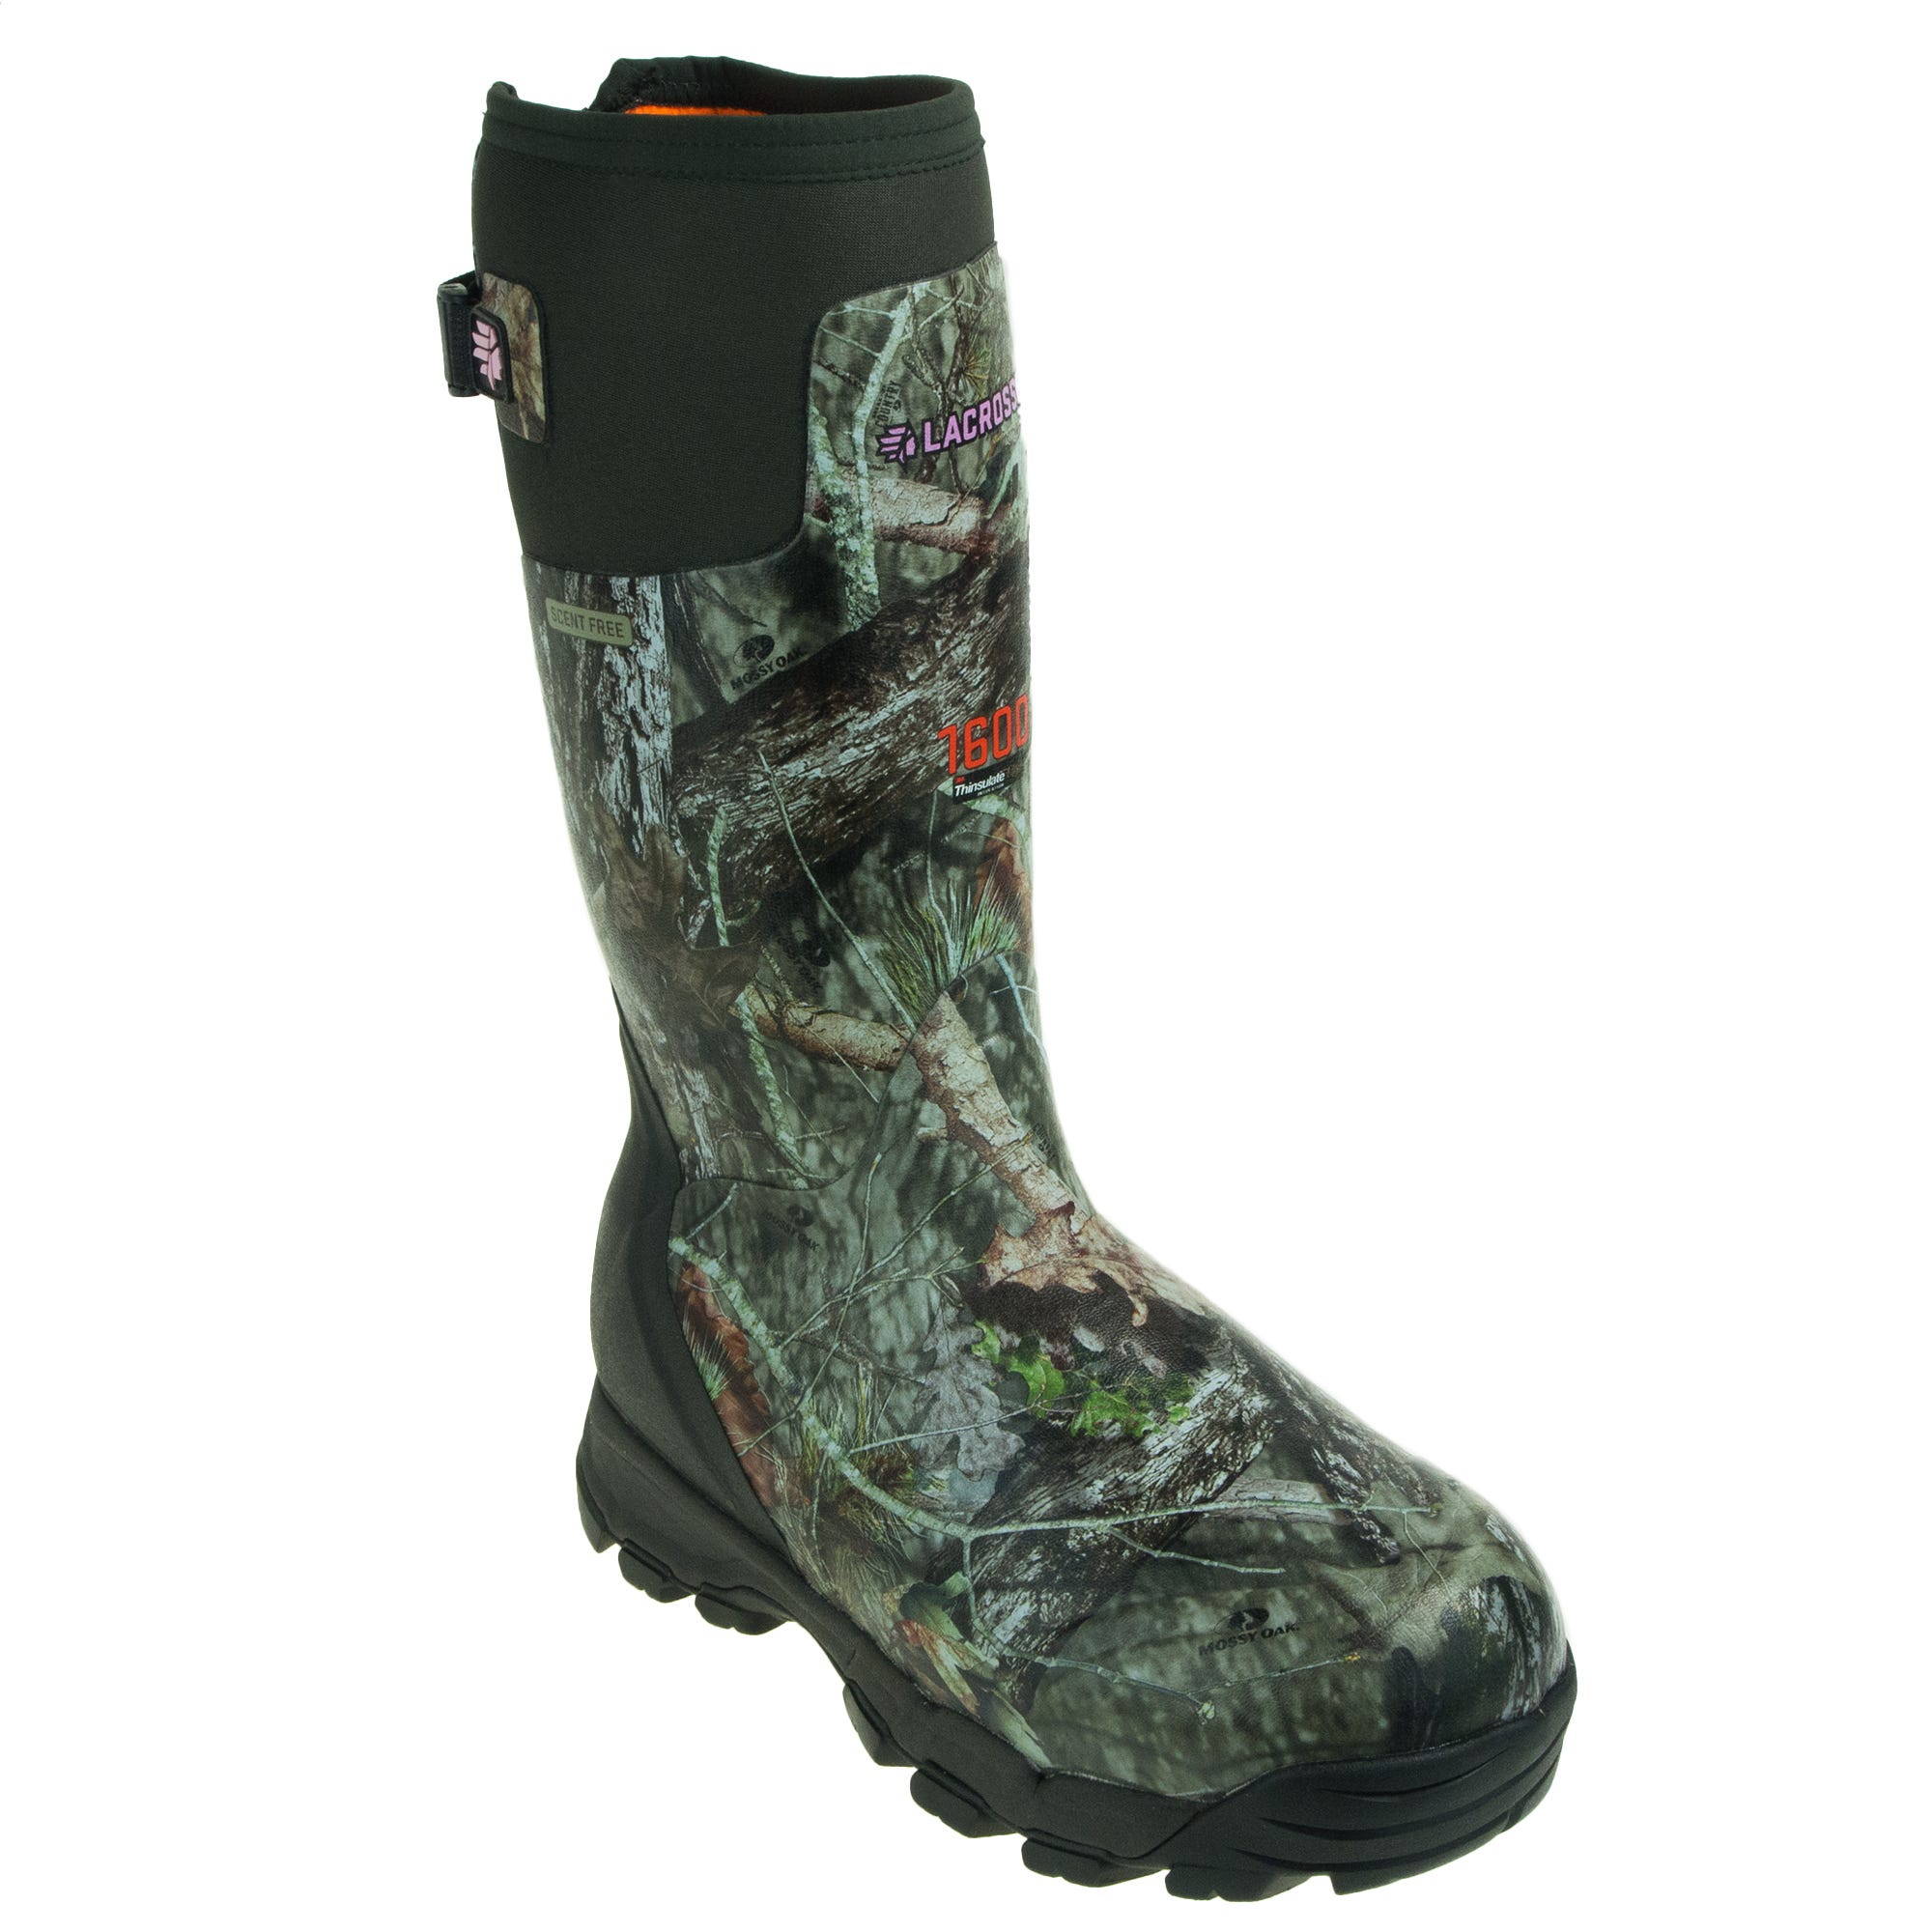 LaCrosse Women's Alphaburly Pro 376031 Insulated Hunting Boots